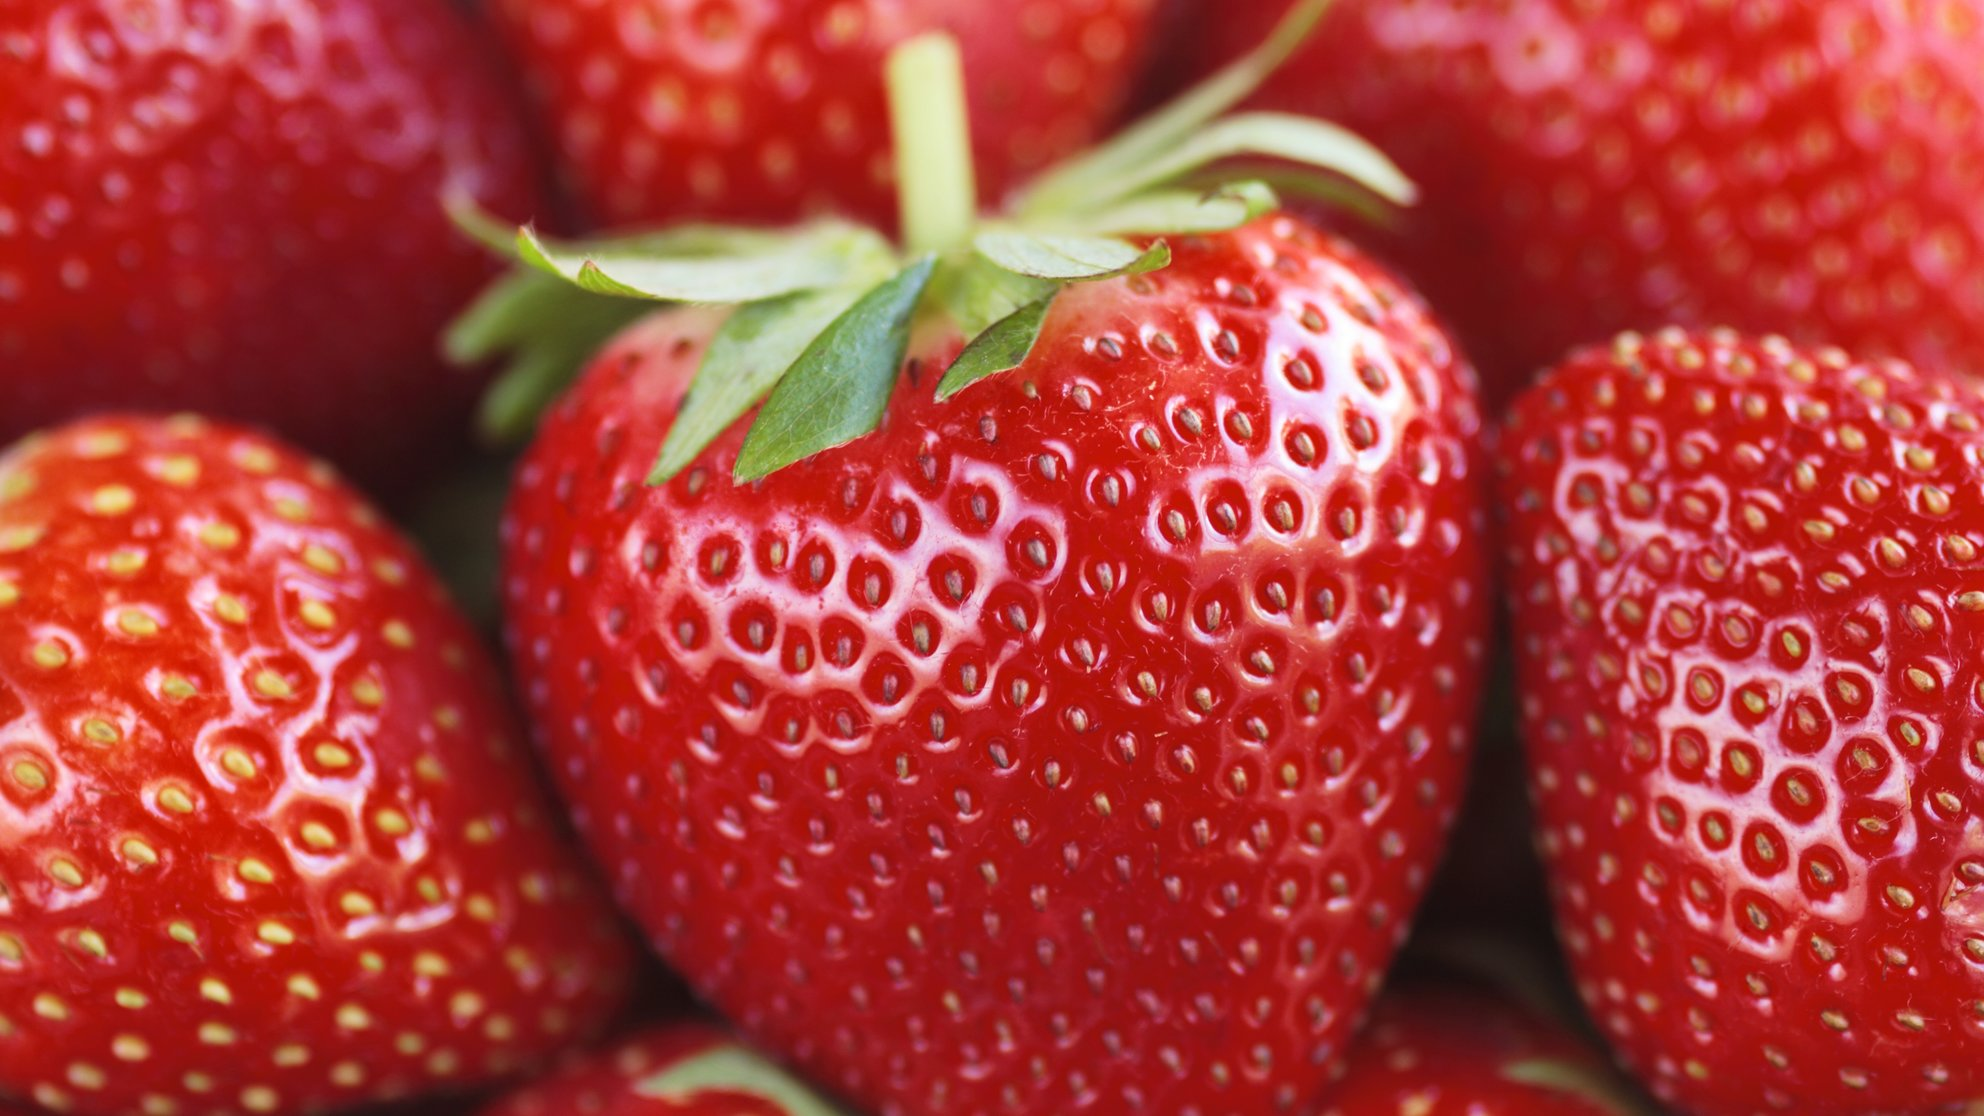 Hepatitis A Outbreak Linked to Frozen Strawberries